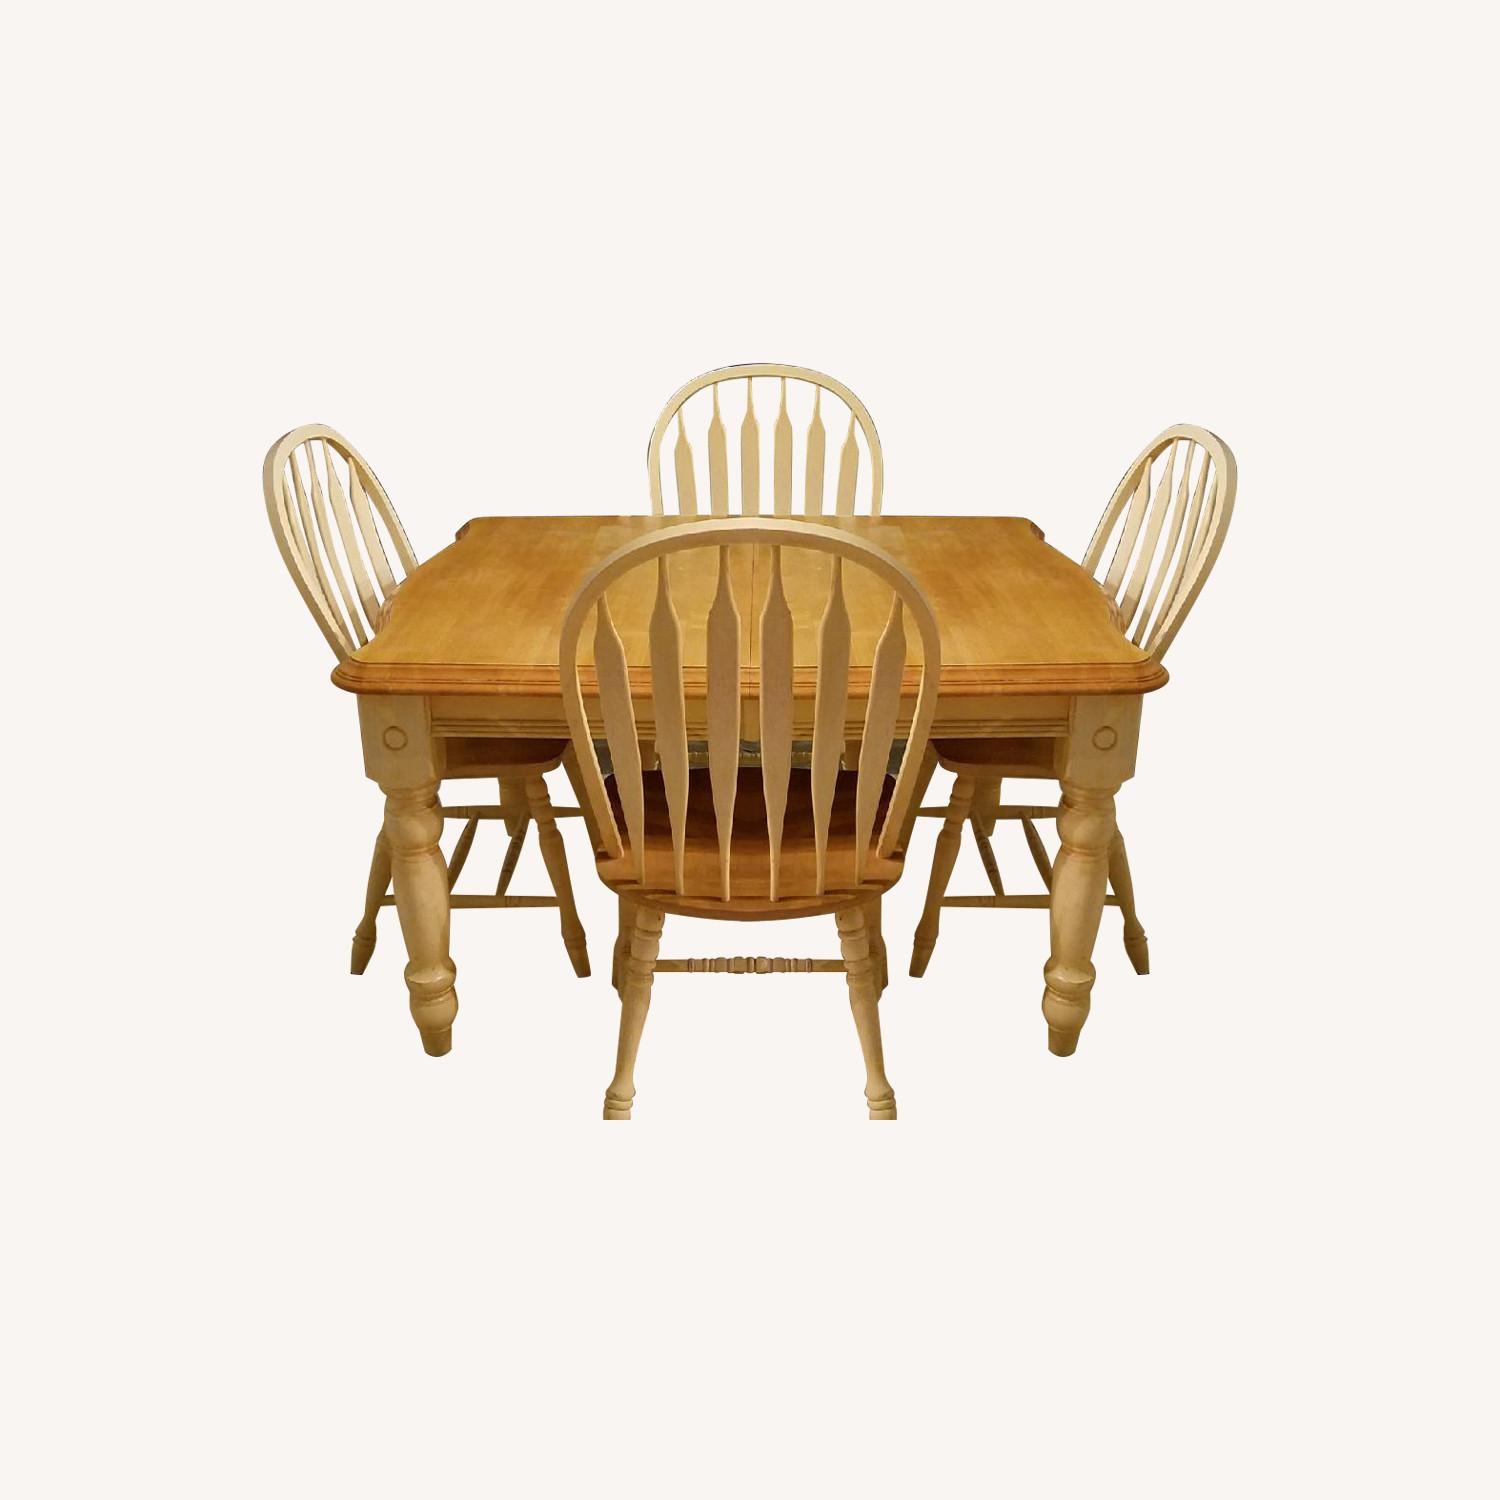 Wood Expandable Dining Table w/ 6 Chairs - image-0